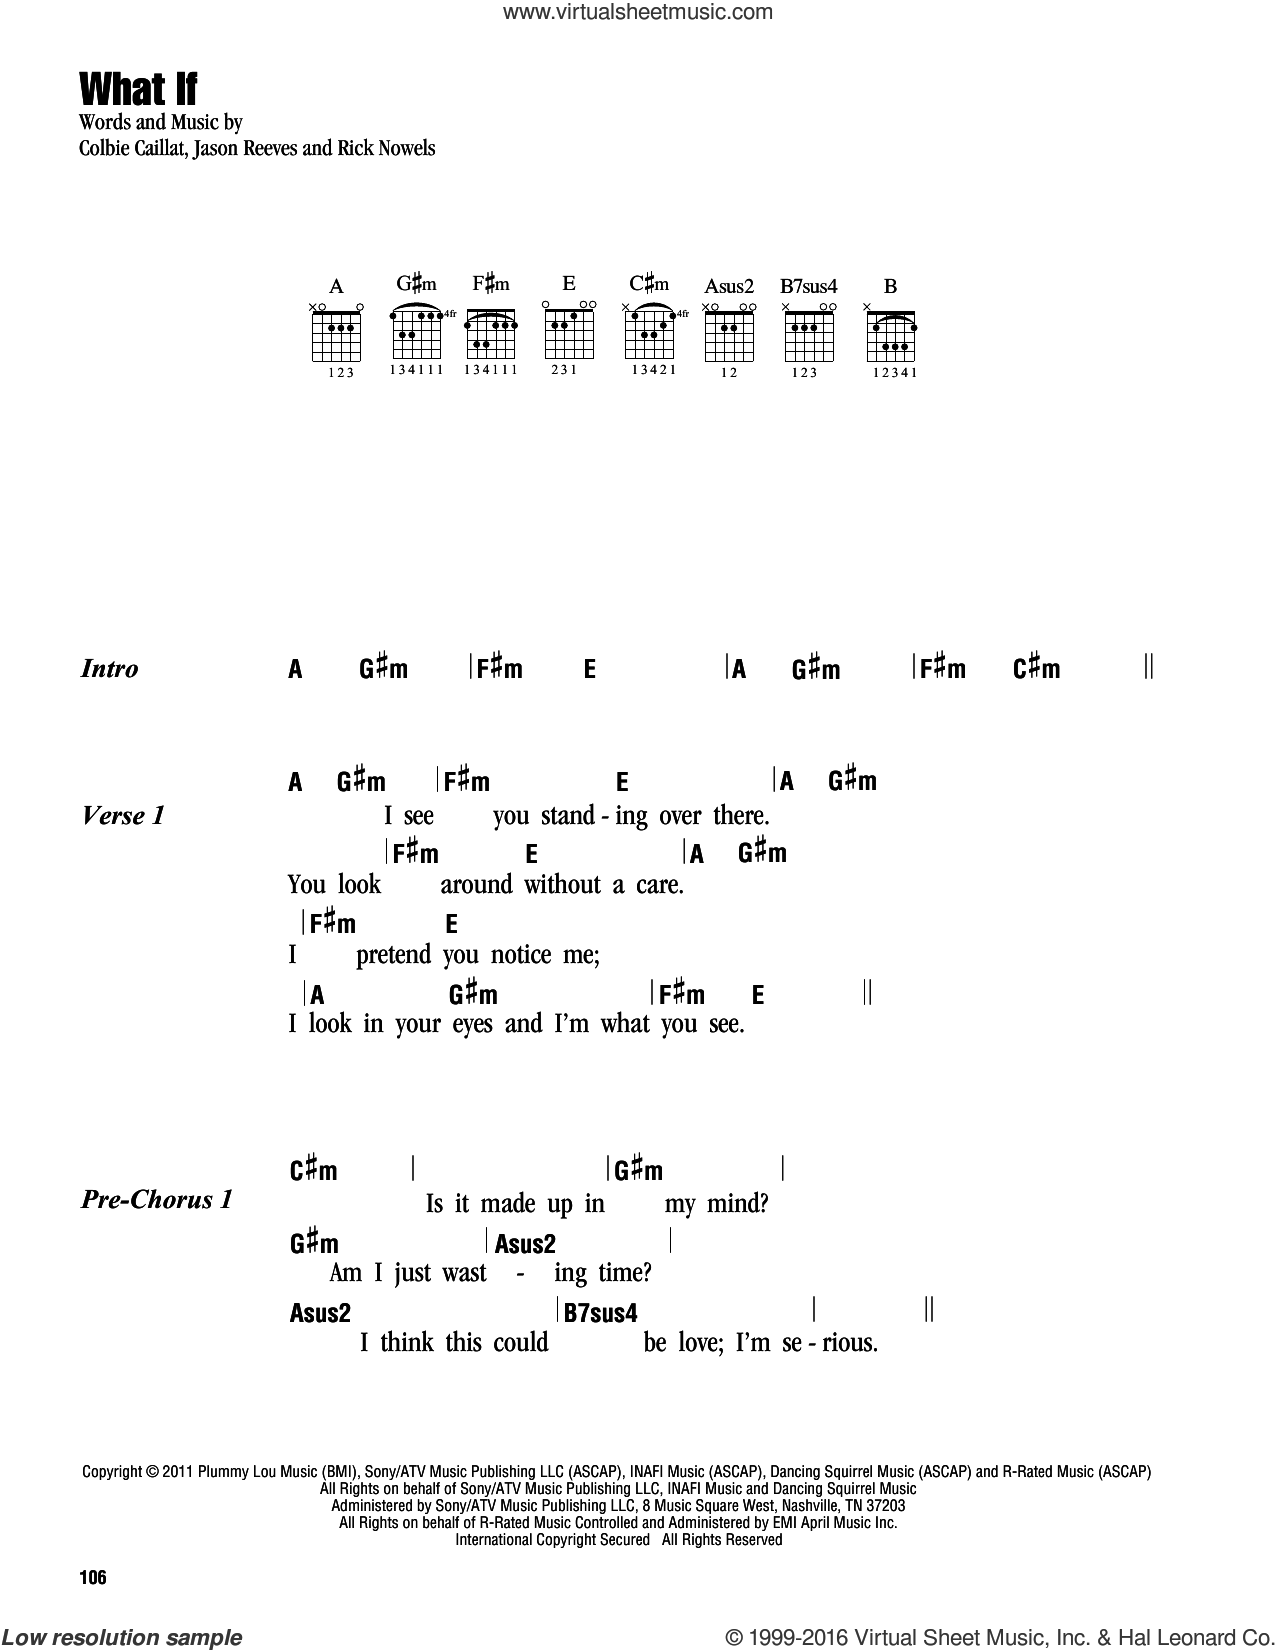 What If sheet music for guitar (chords) by Colbie Caillat, Jason Reeves and Rick Nowels, intermediate skill level